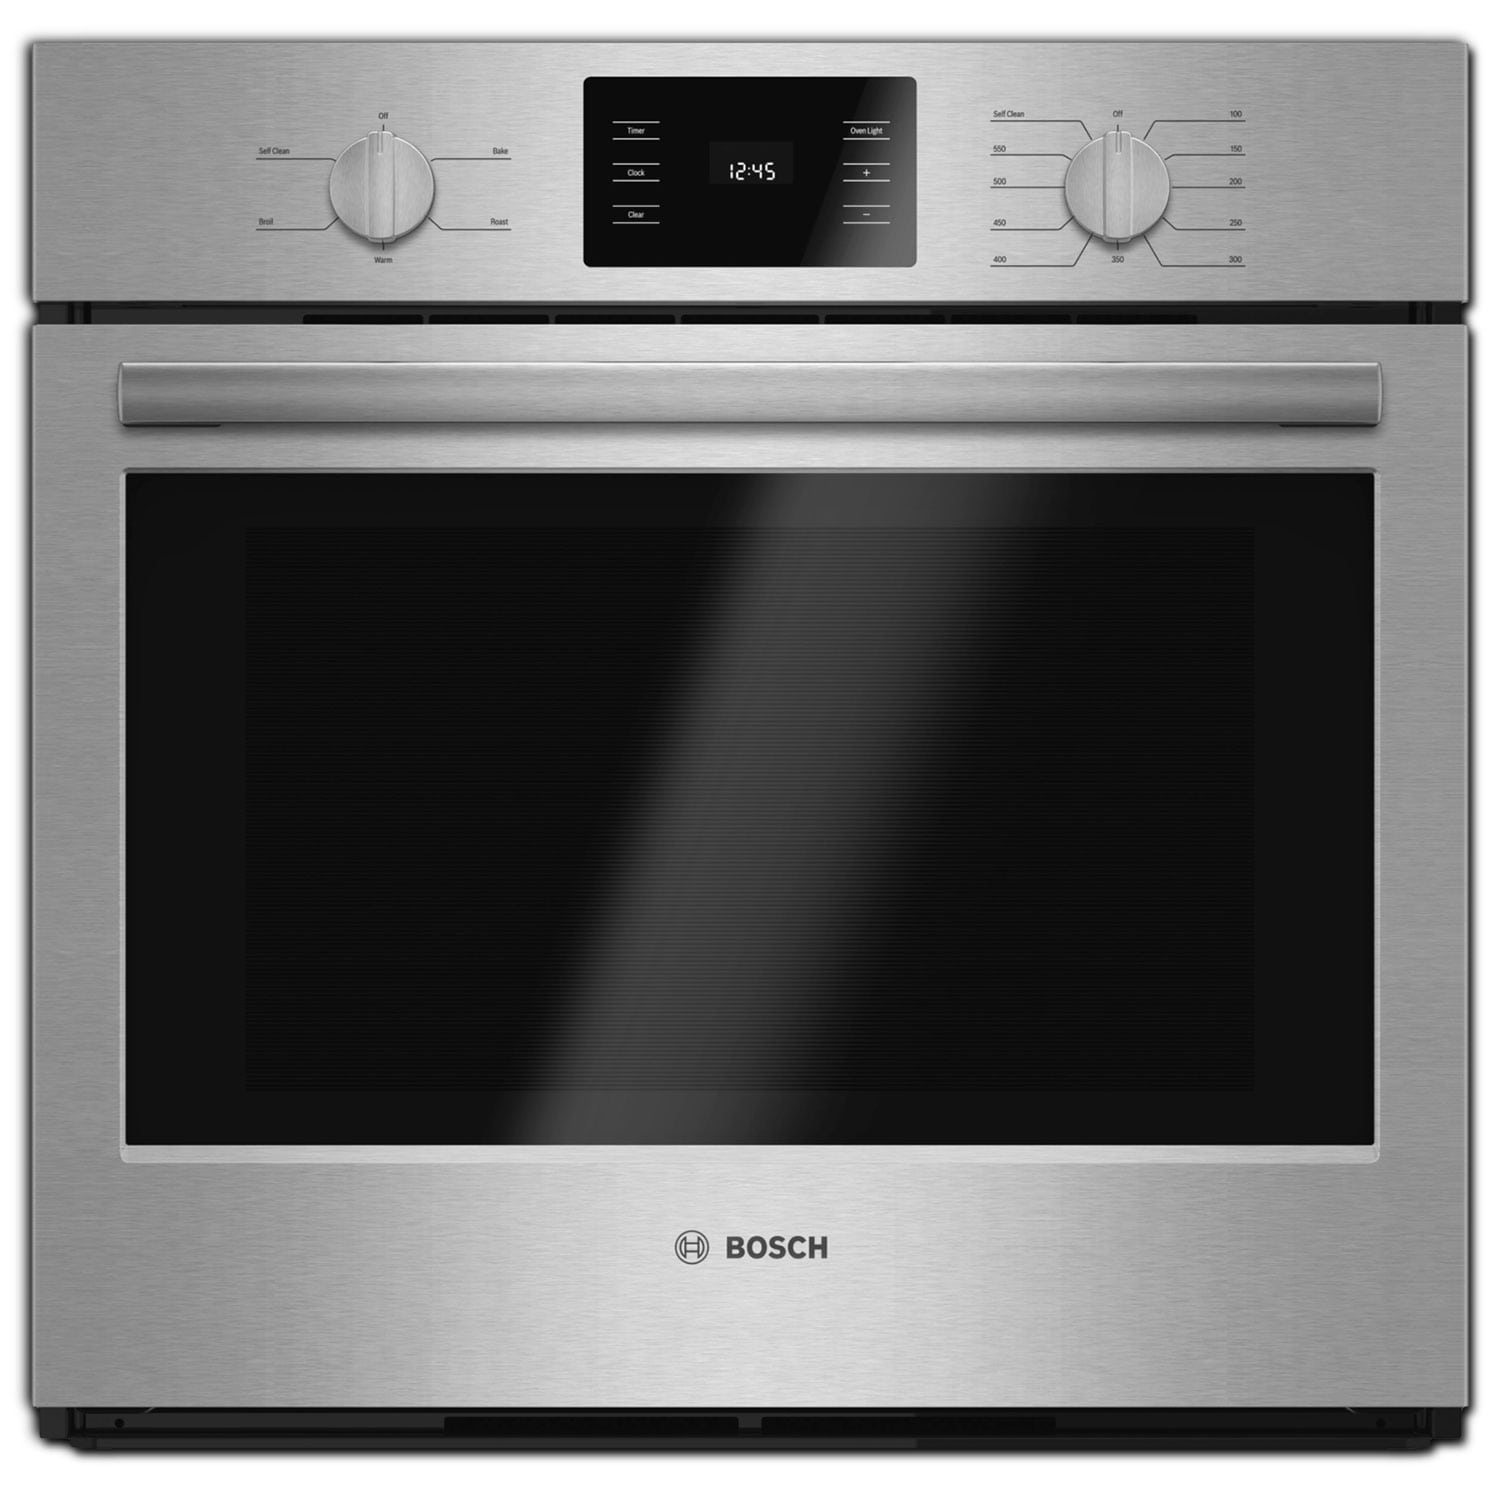 Cooking Products - Bosch Stainless Steel Wall Oven (4.6 Cu. Ft.) - HBL5351UC